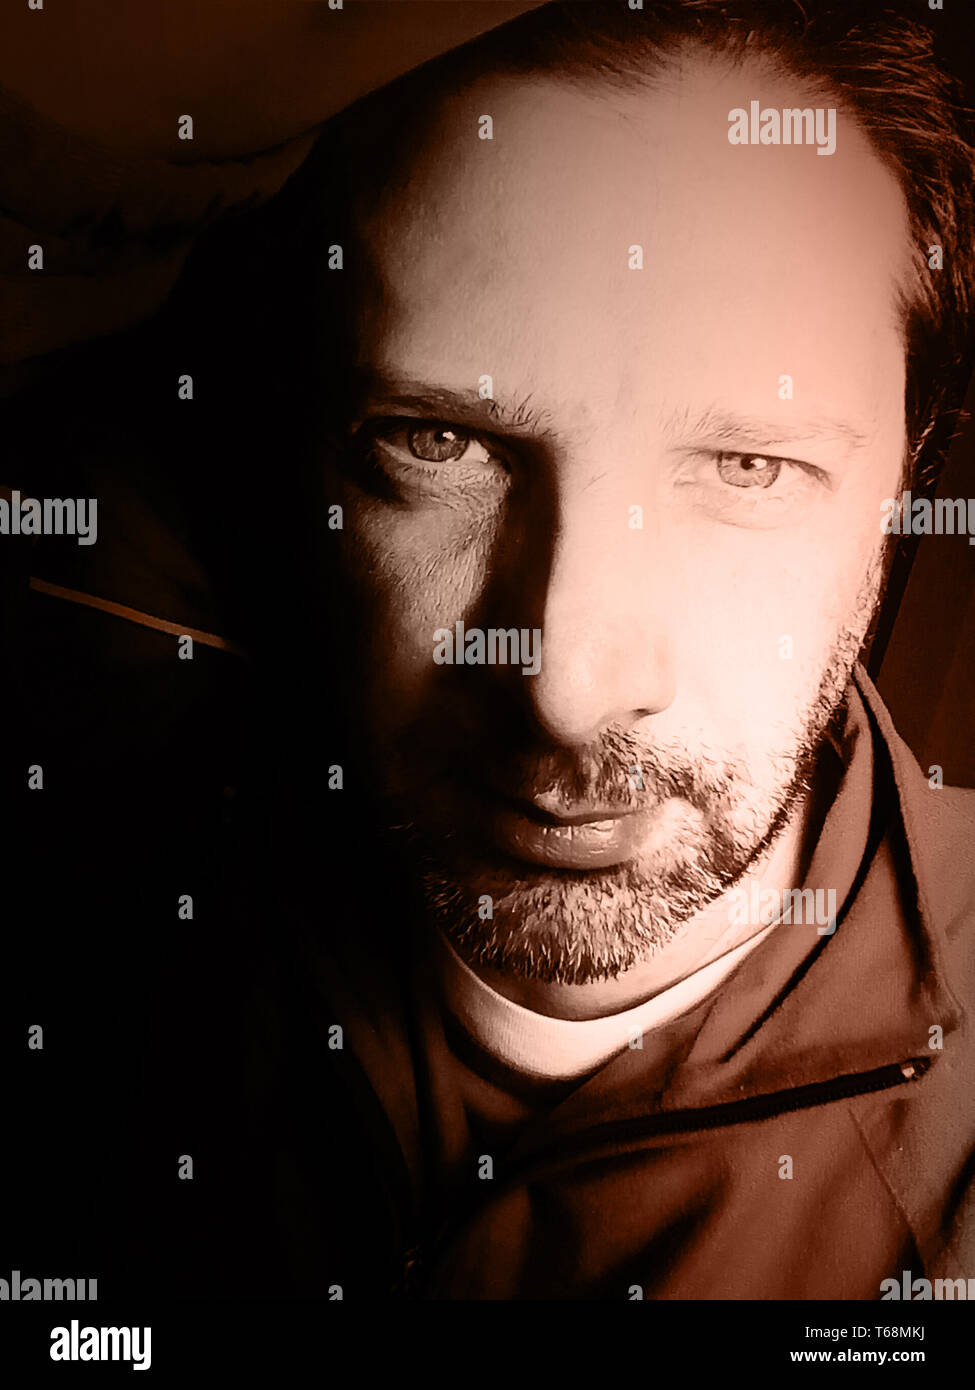 Portrait of a man in sepia tones - photography - Stock Image